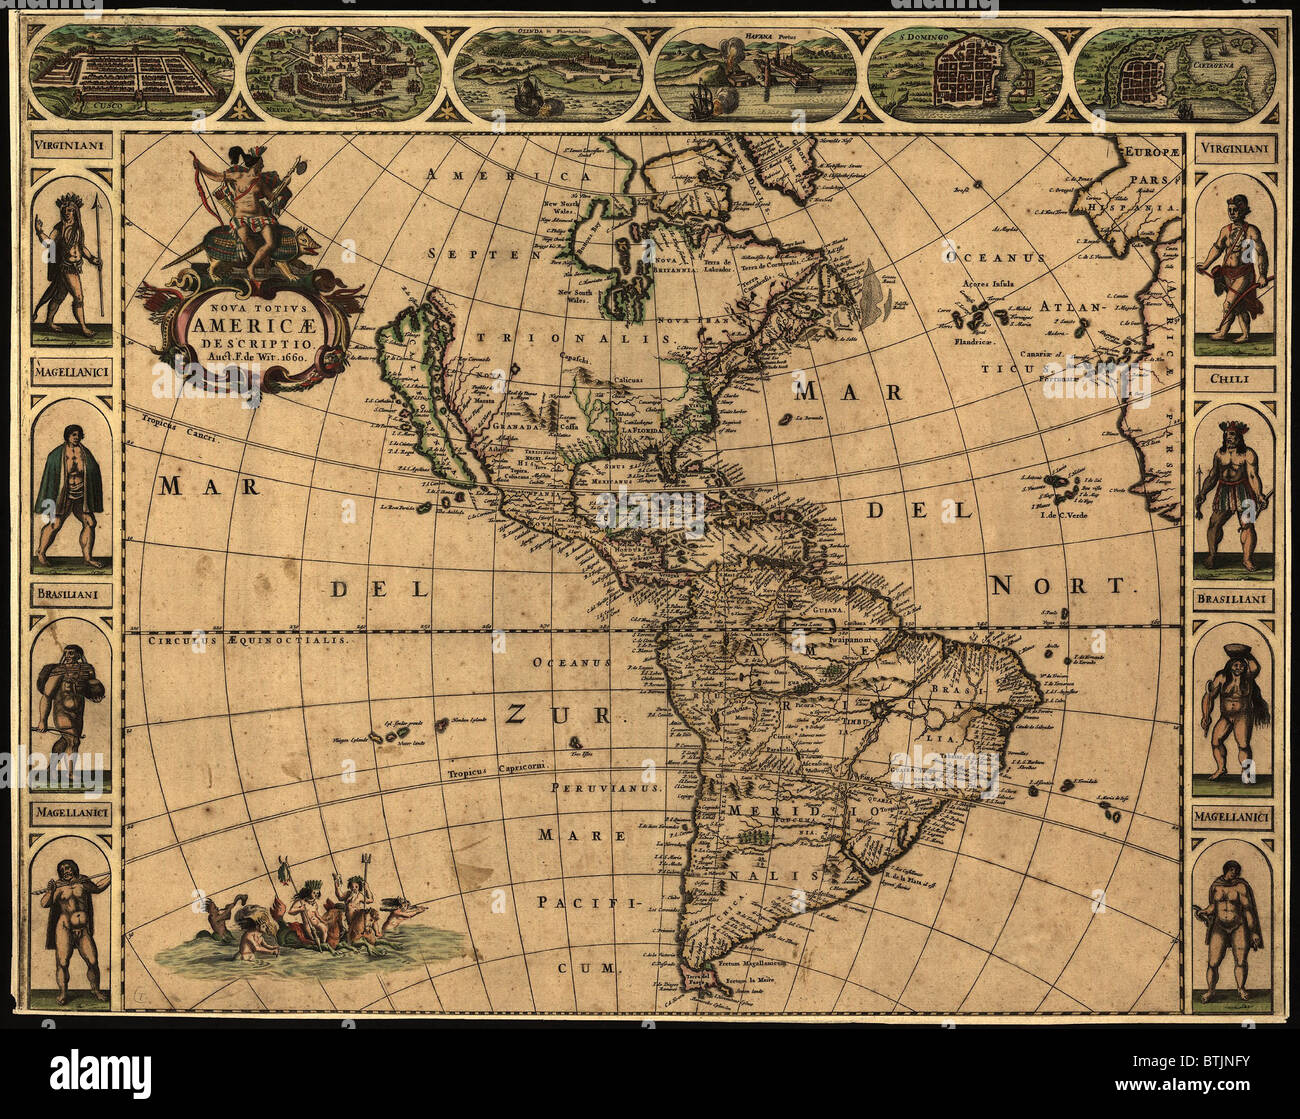 1660 map of the Western Hemisphere indicating the geographic